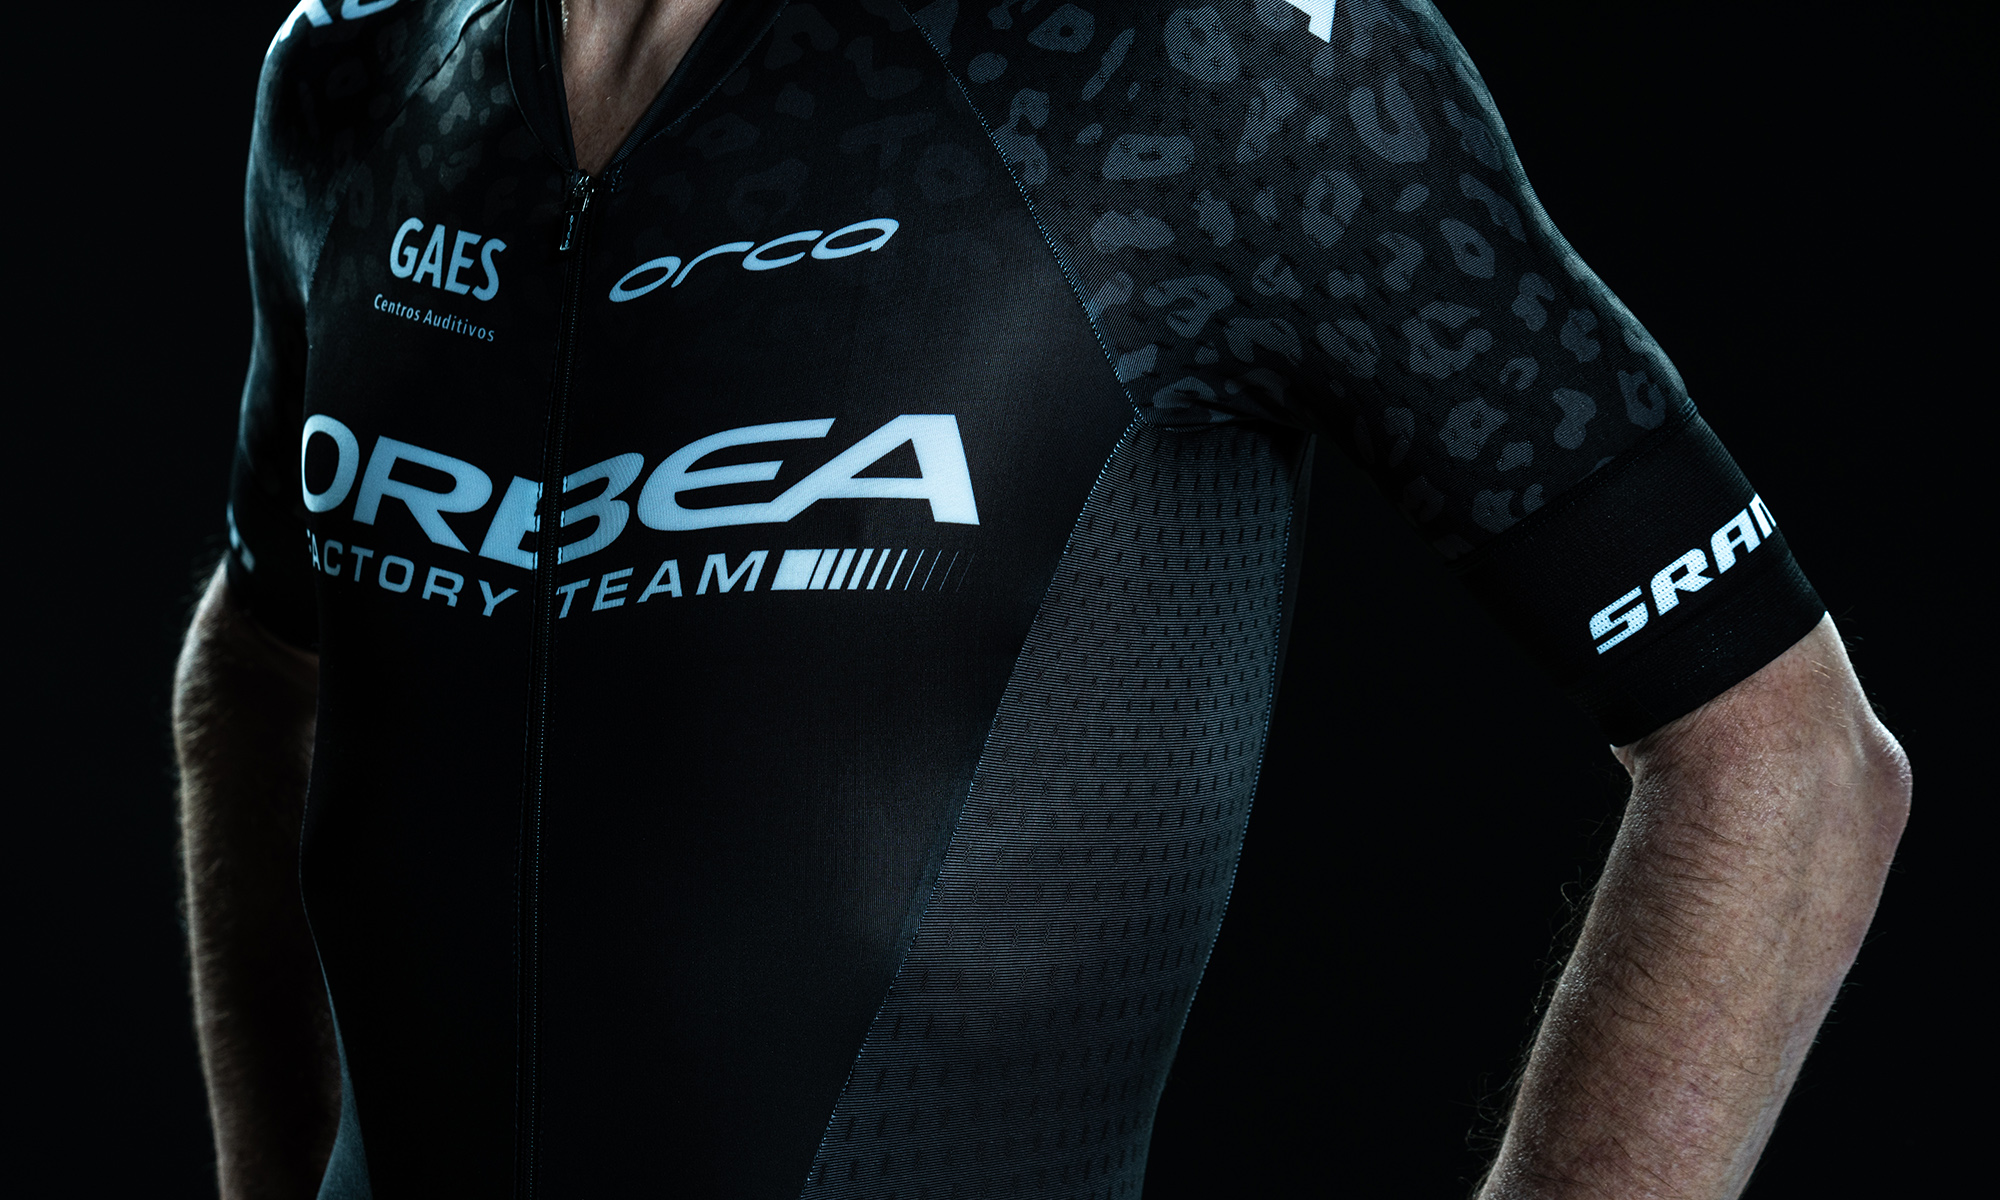 Orbea Factory Team Absa Cape Epic